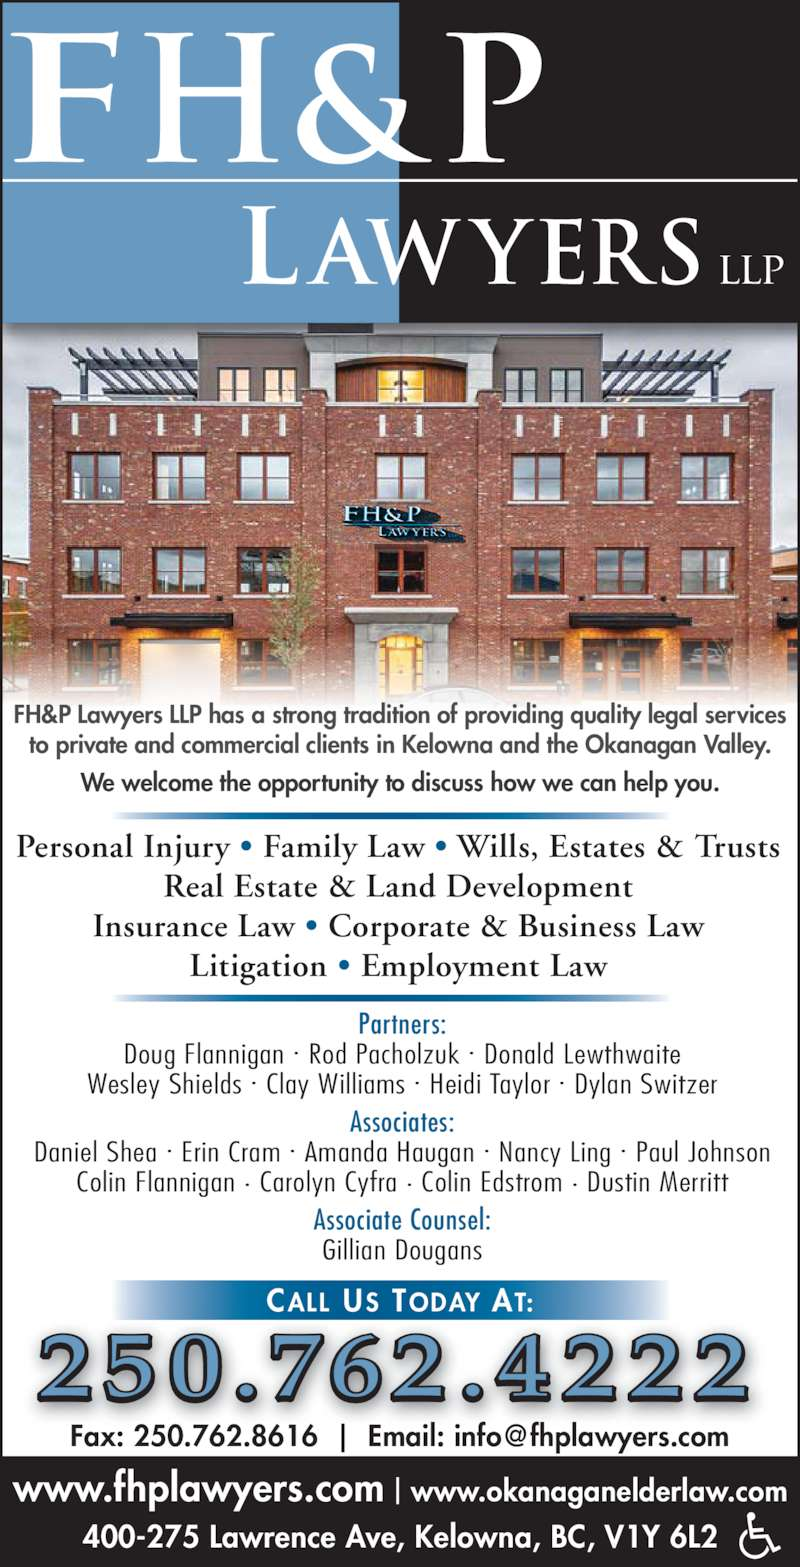 FH&P Lawyers LLP (2507624222) - Display Ad - 400-275 Lawrence Ave, Kelowna, BC, V1Y 6L2 CALL US TODAY AT: FH&P Lawyers LLP has a strong tradition of providing quality legal services to private and commercial clients in Kelowna and the Okanagan Valley. We welcome the opportunity to discuss how we can help you. Personal Injury ? Family Law ? Wills, Estates & Trusts Insurance Law ? Corporate & Business Law Litigation ? Employment Law 2 50 .762 .4 2 2 2 Partners: www.fhplawyers.com | www.okanaganelderlaw.com Doug Flannigan ? Rod Pacholzuk ? Donald Lewthwaite Wesley Shields ? Clay Williams ? Heidi Taylor ? Dylan Switzer Associates: Daniel Shea ? Erin Cram ? Amanda Haugan ? Nancy Ling ? Paul Johnson Colin Flannigan ? Carolyn Cyfra ? Colin Edstrom ? Dustin Merritt Associate Counsel: Real Estate & Land Development Gillian Dougans